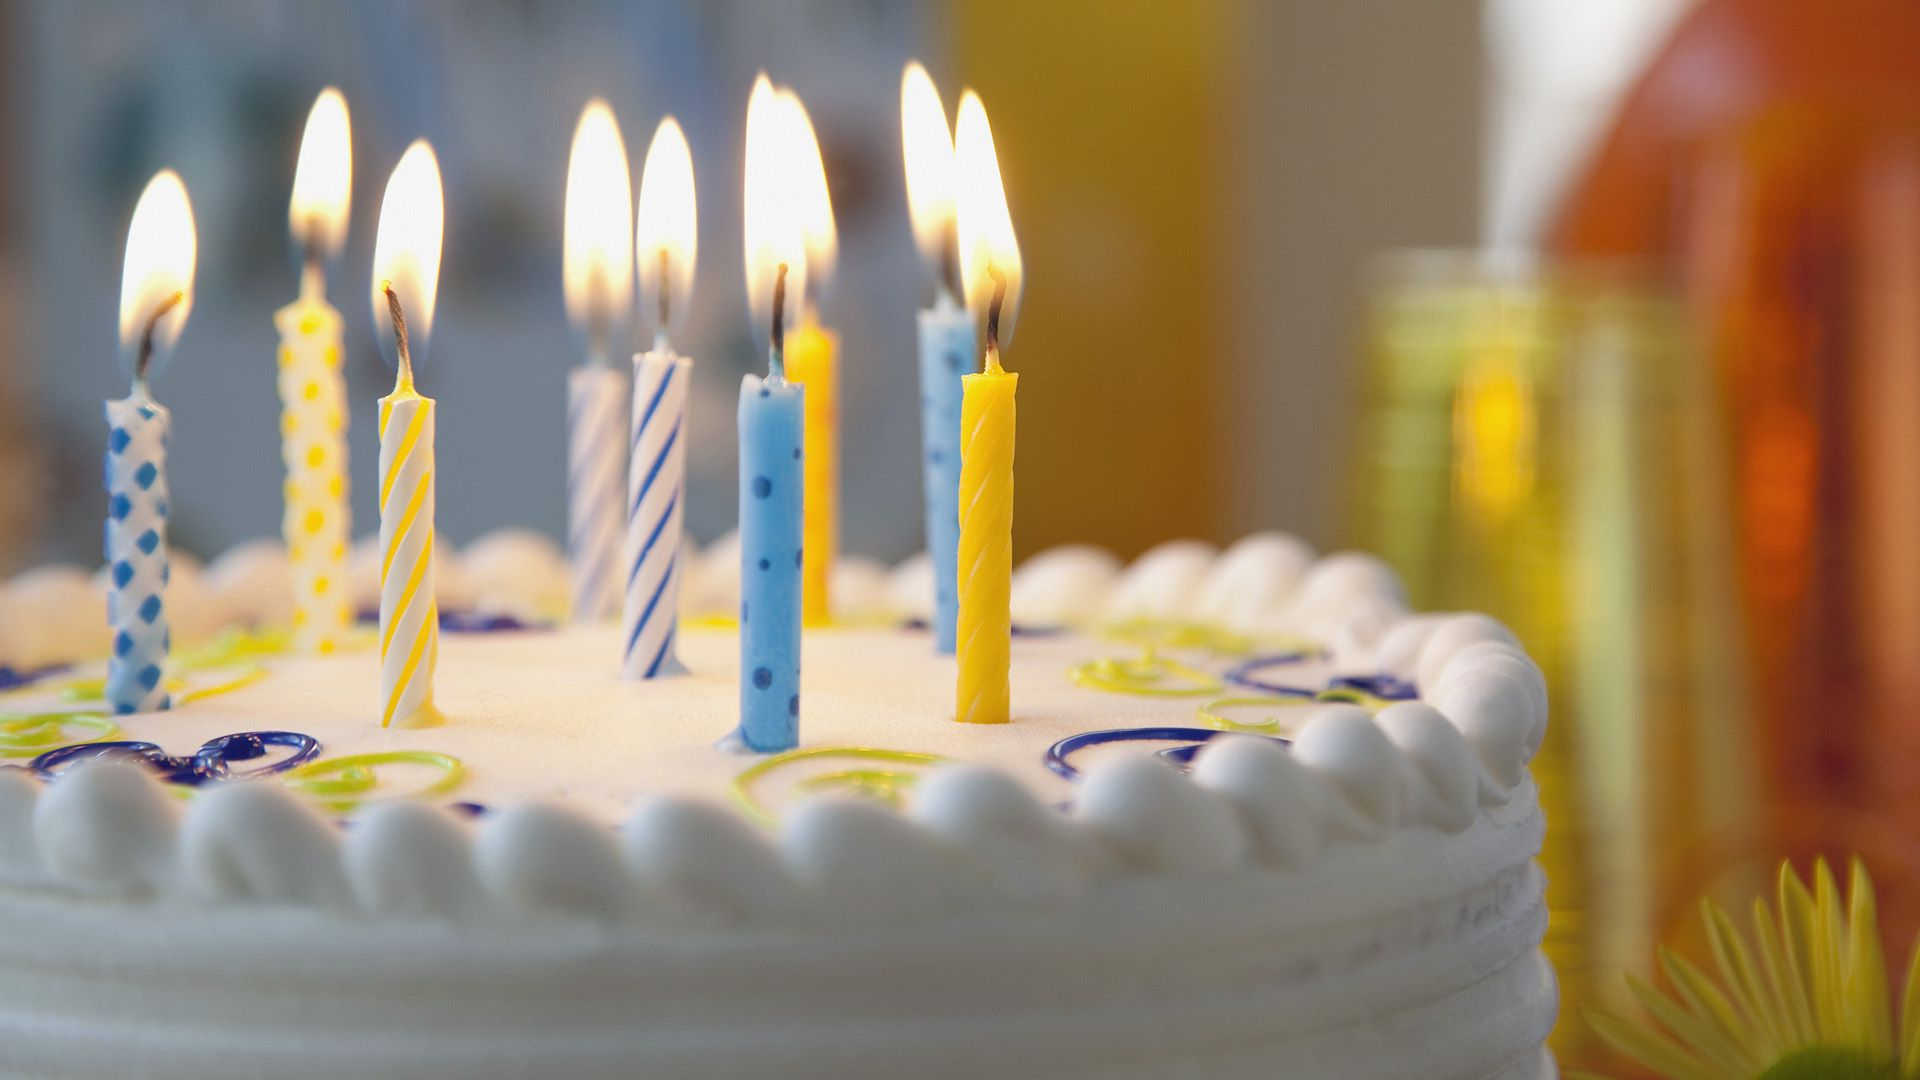 Hd wallpaper birthday - Birthday Candle Cake And Candle Celebration